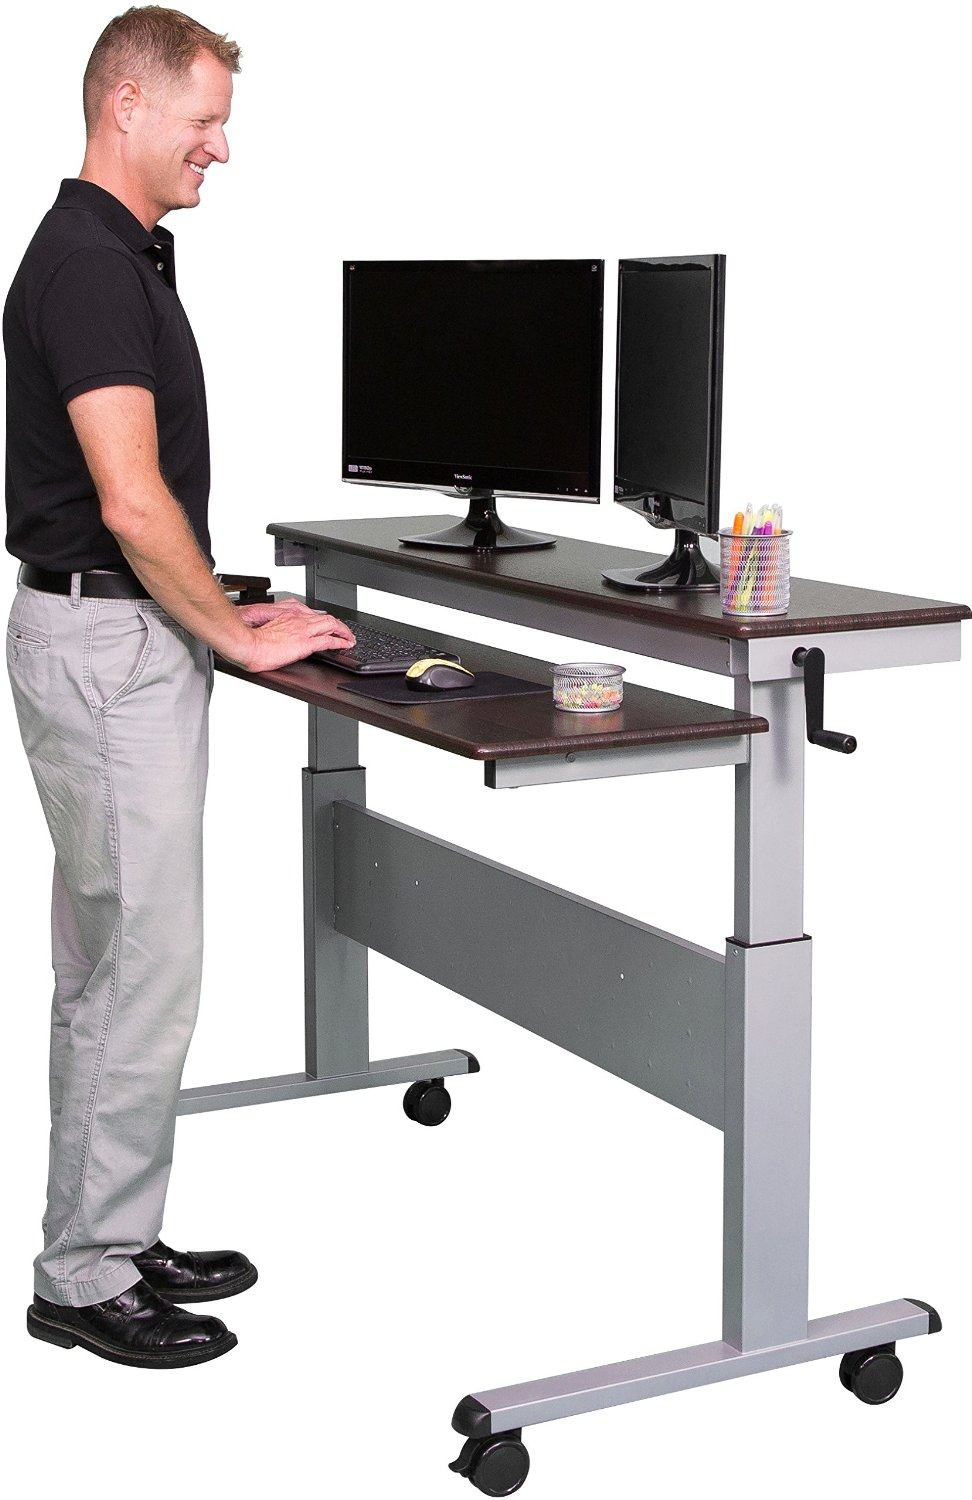 8 Best Adjustable Standing Desks In 2018 Reviews And